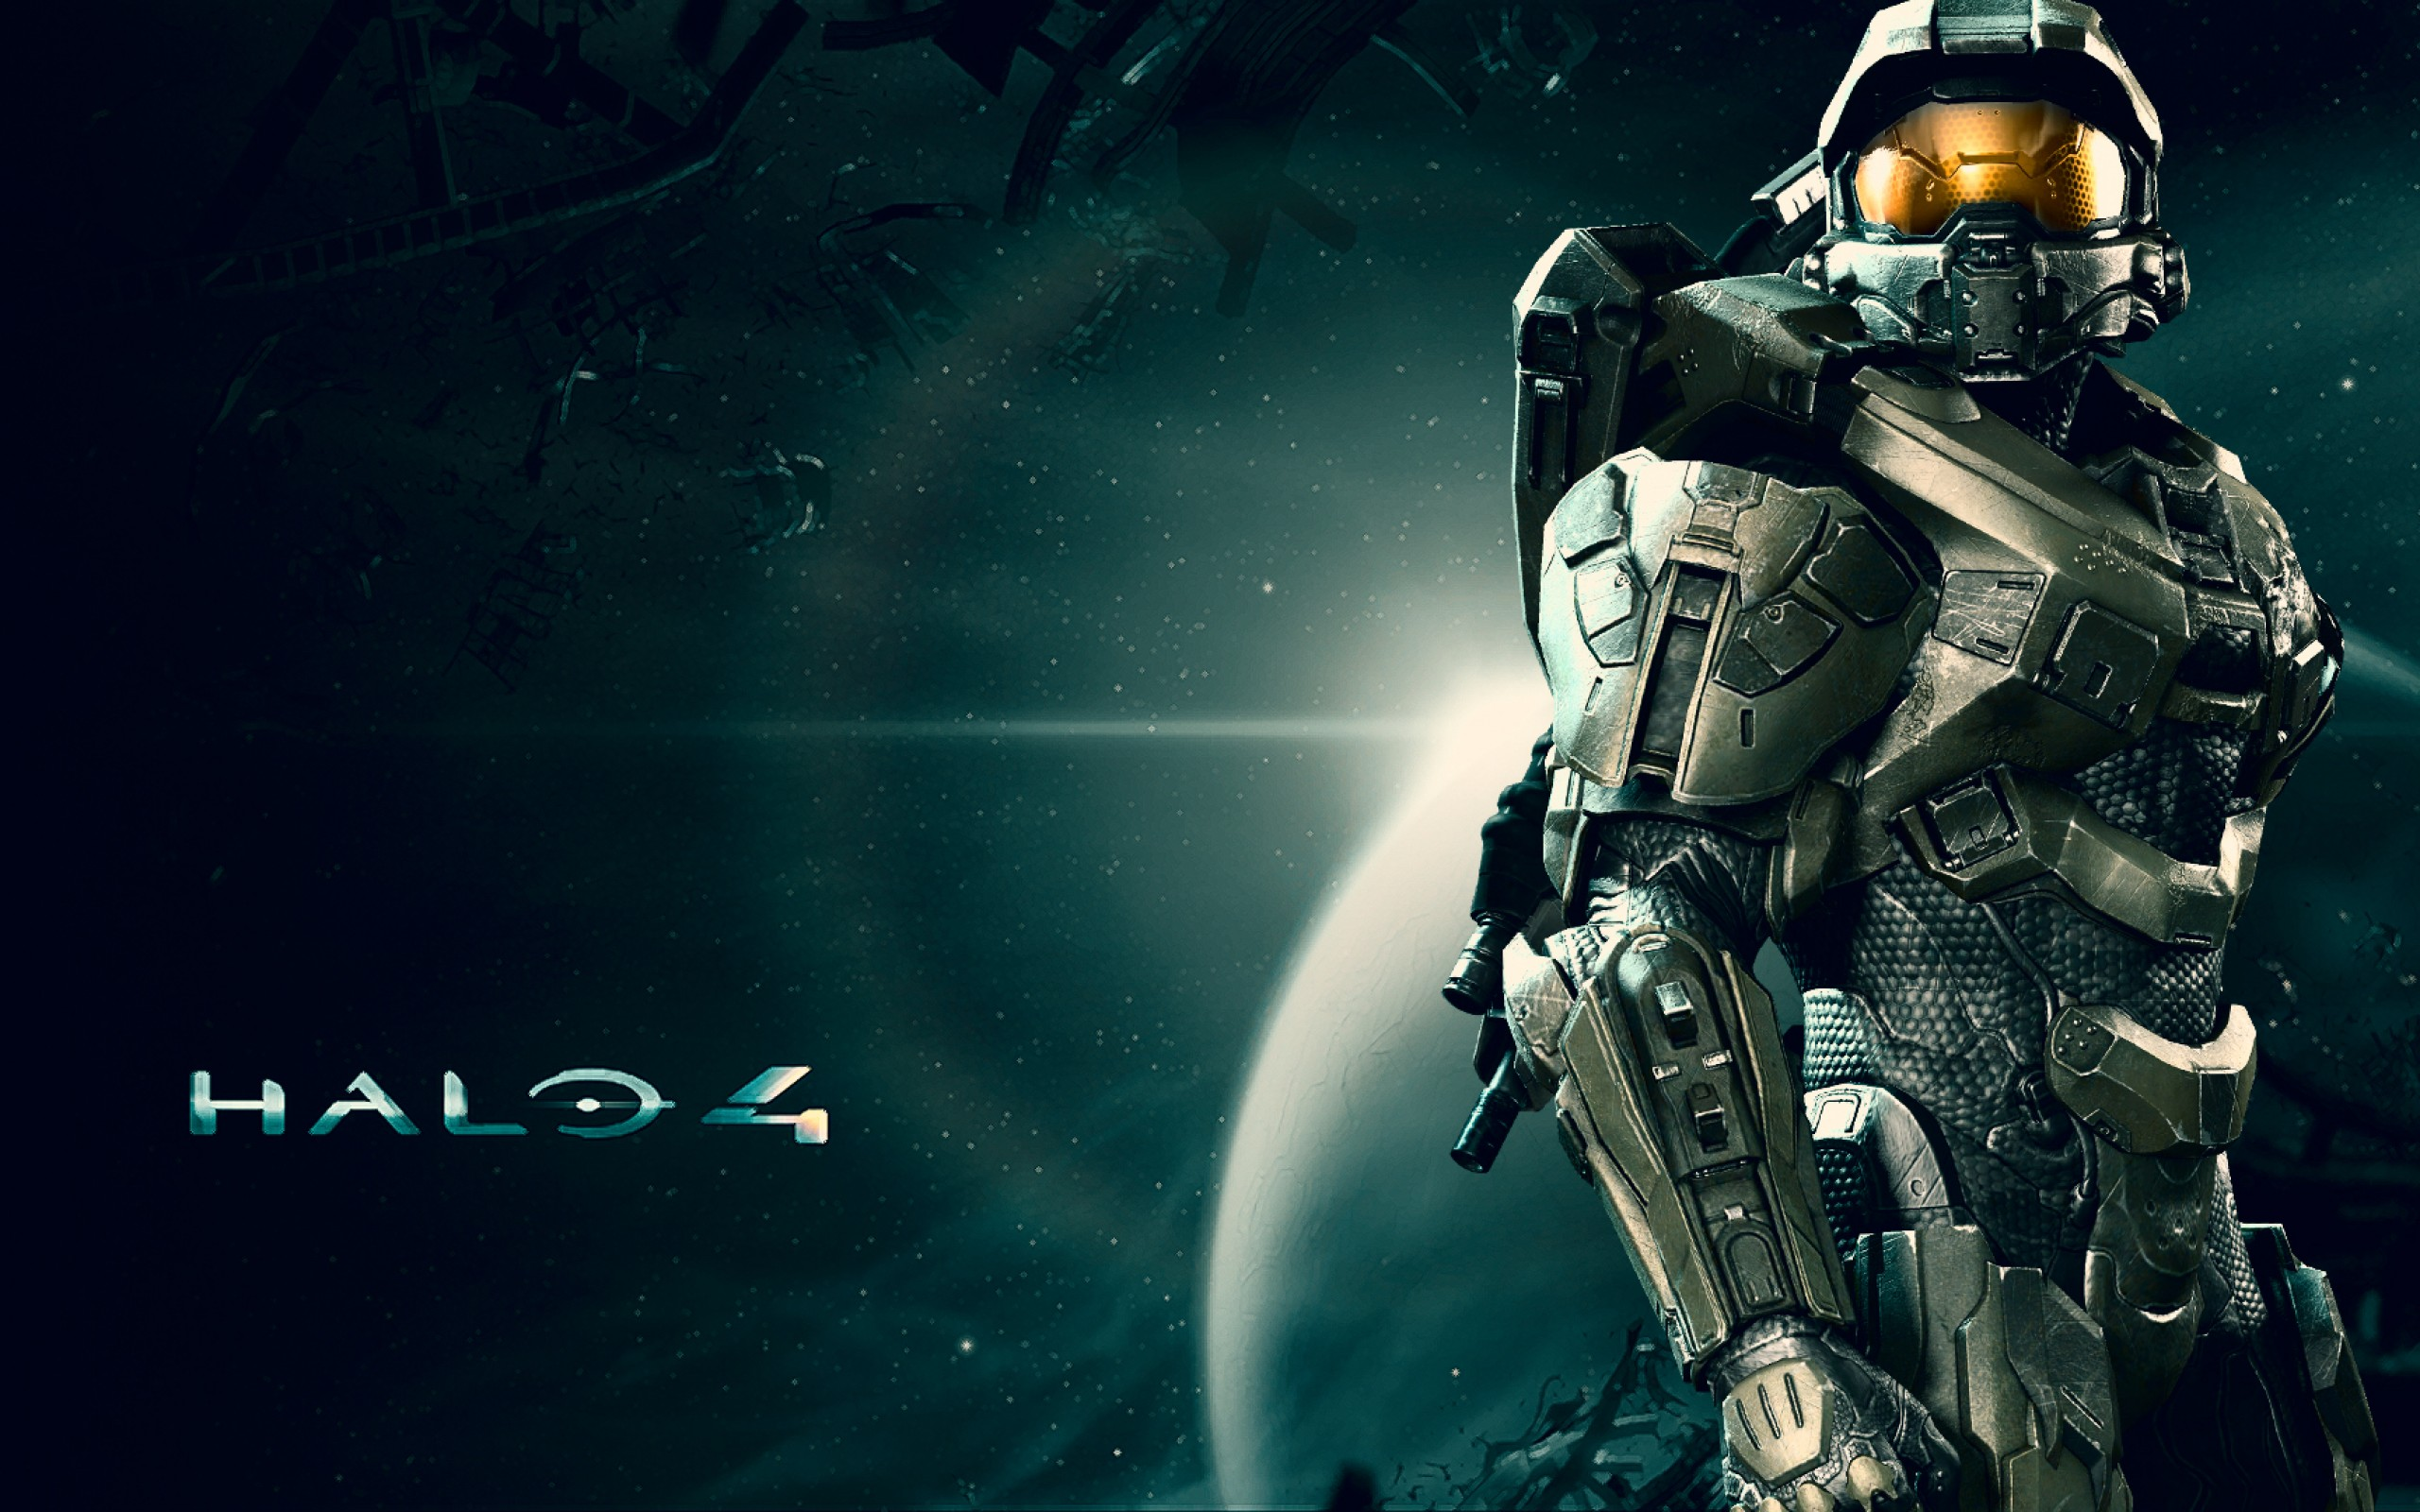 Amazing Halo 4 Pictures & Backgrounds